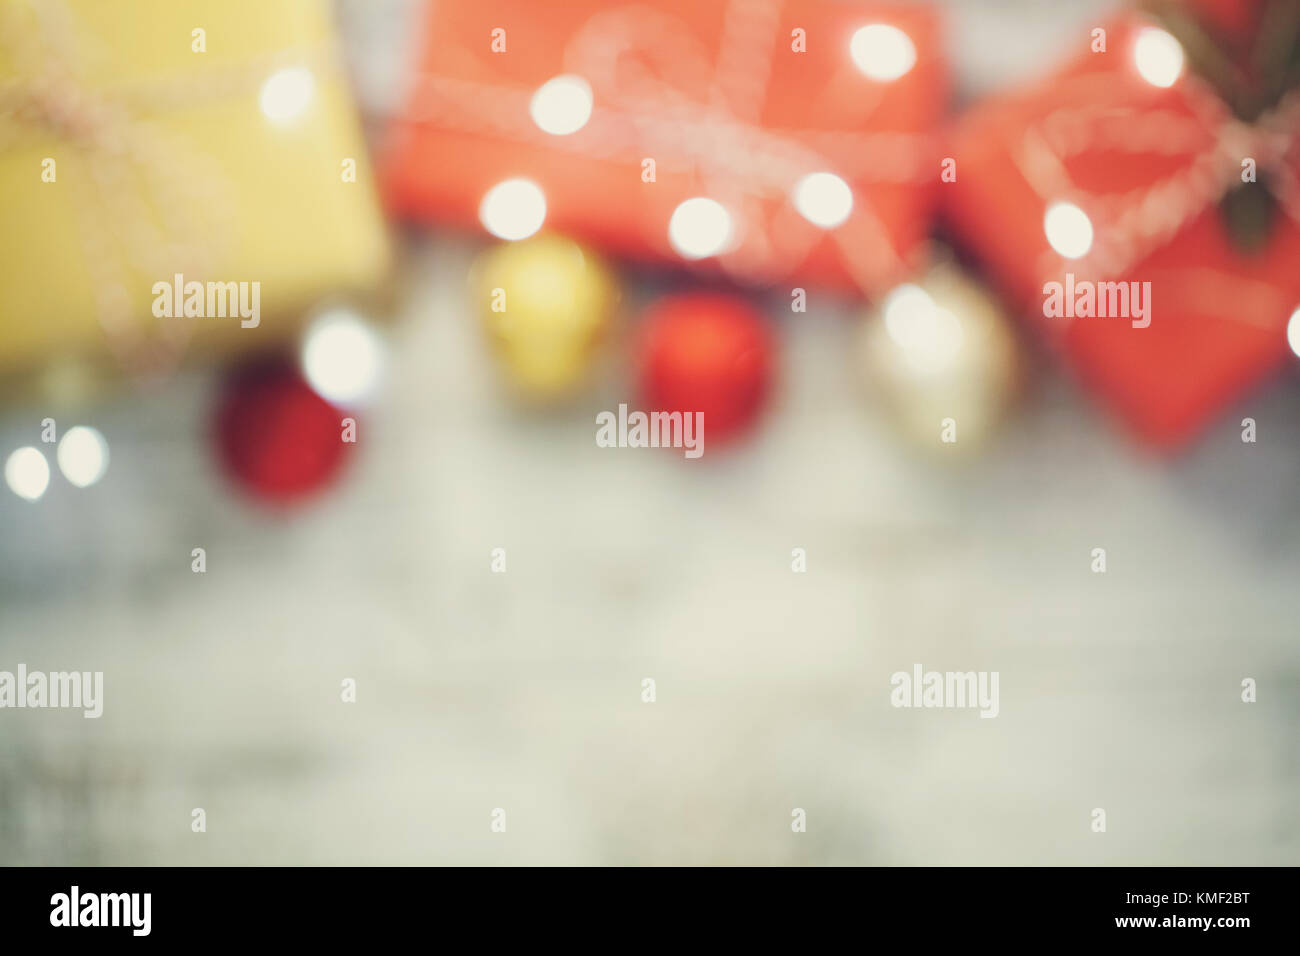 Abstract blur Christmas boxes with gifts, Christmas decorations and garlands for background use. vintage tones. - Stock Image